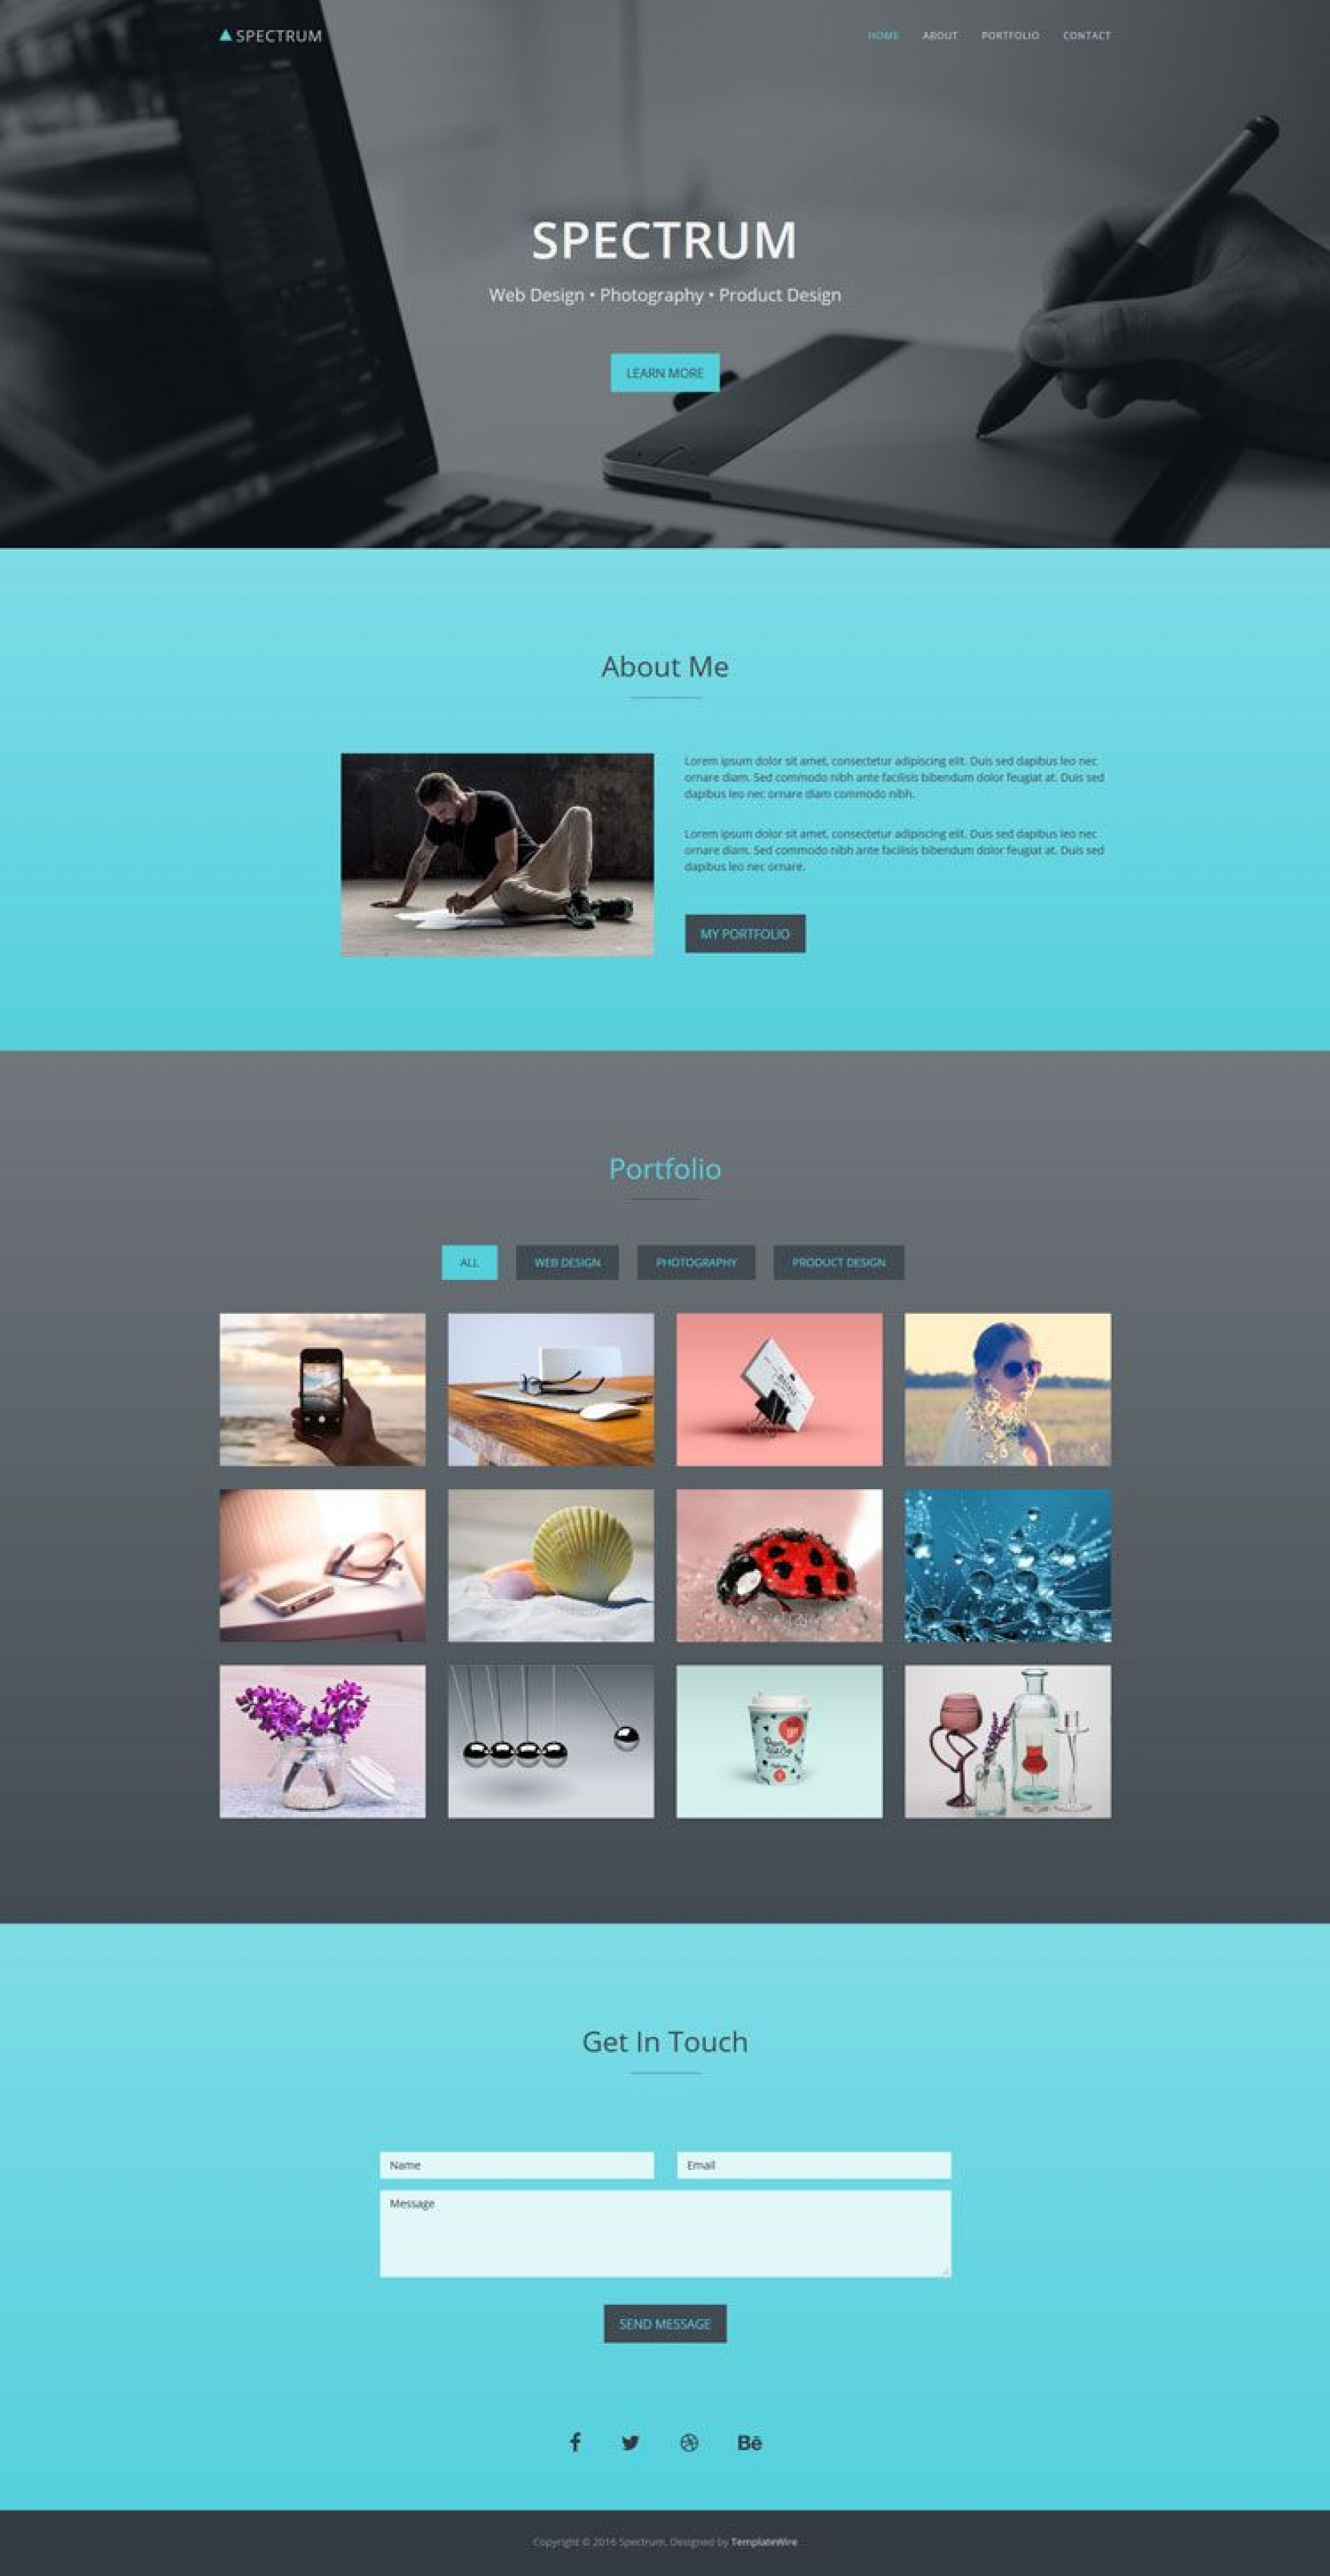 001 Fantastic Free Portfolio Website Template Highest Quality  Templates For Web Developer Photography Html51920